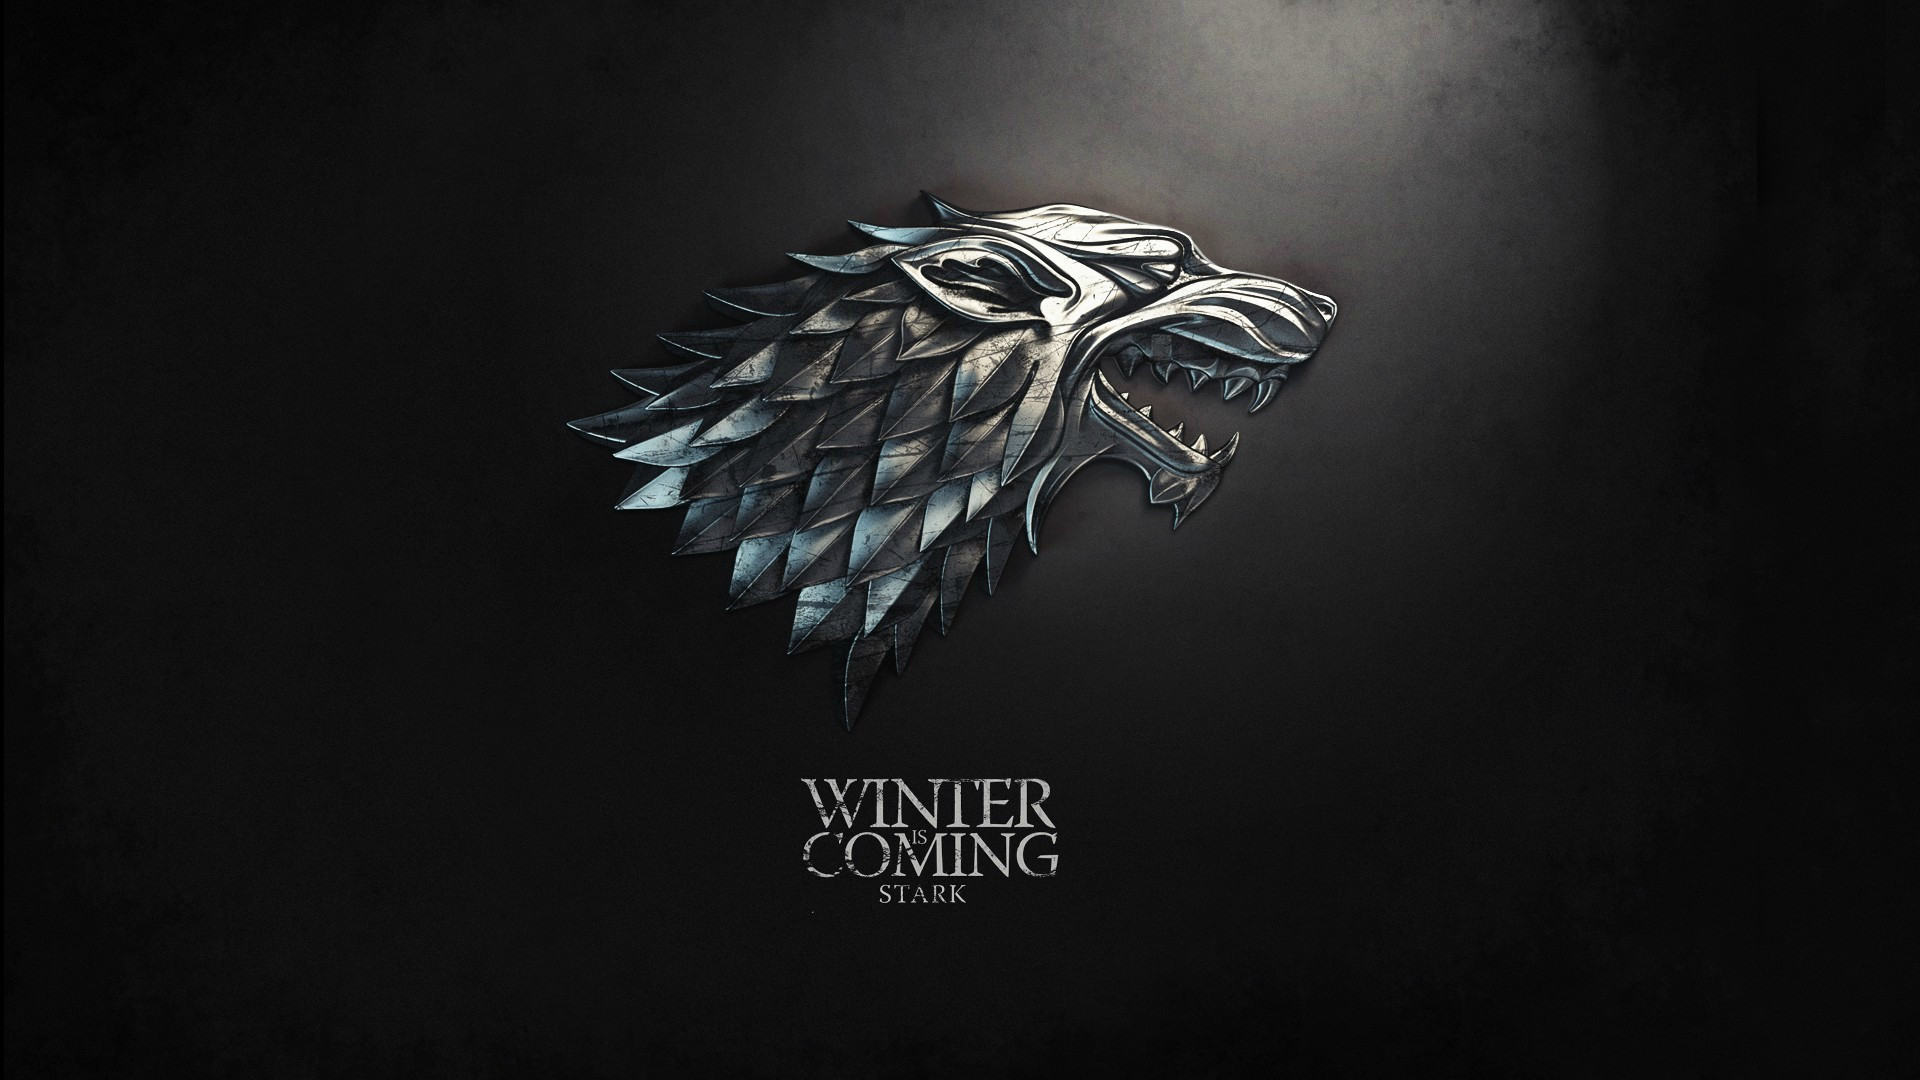 Game-of-Thrones-%C2%A1-HD-Megapost-1920x1080-Taringa-wallpaper-wp3805784